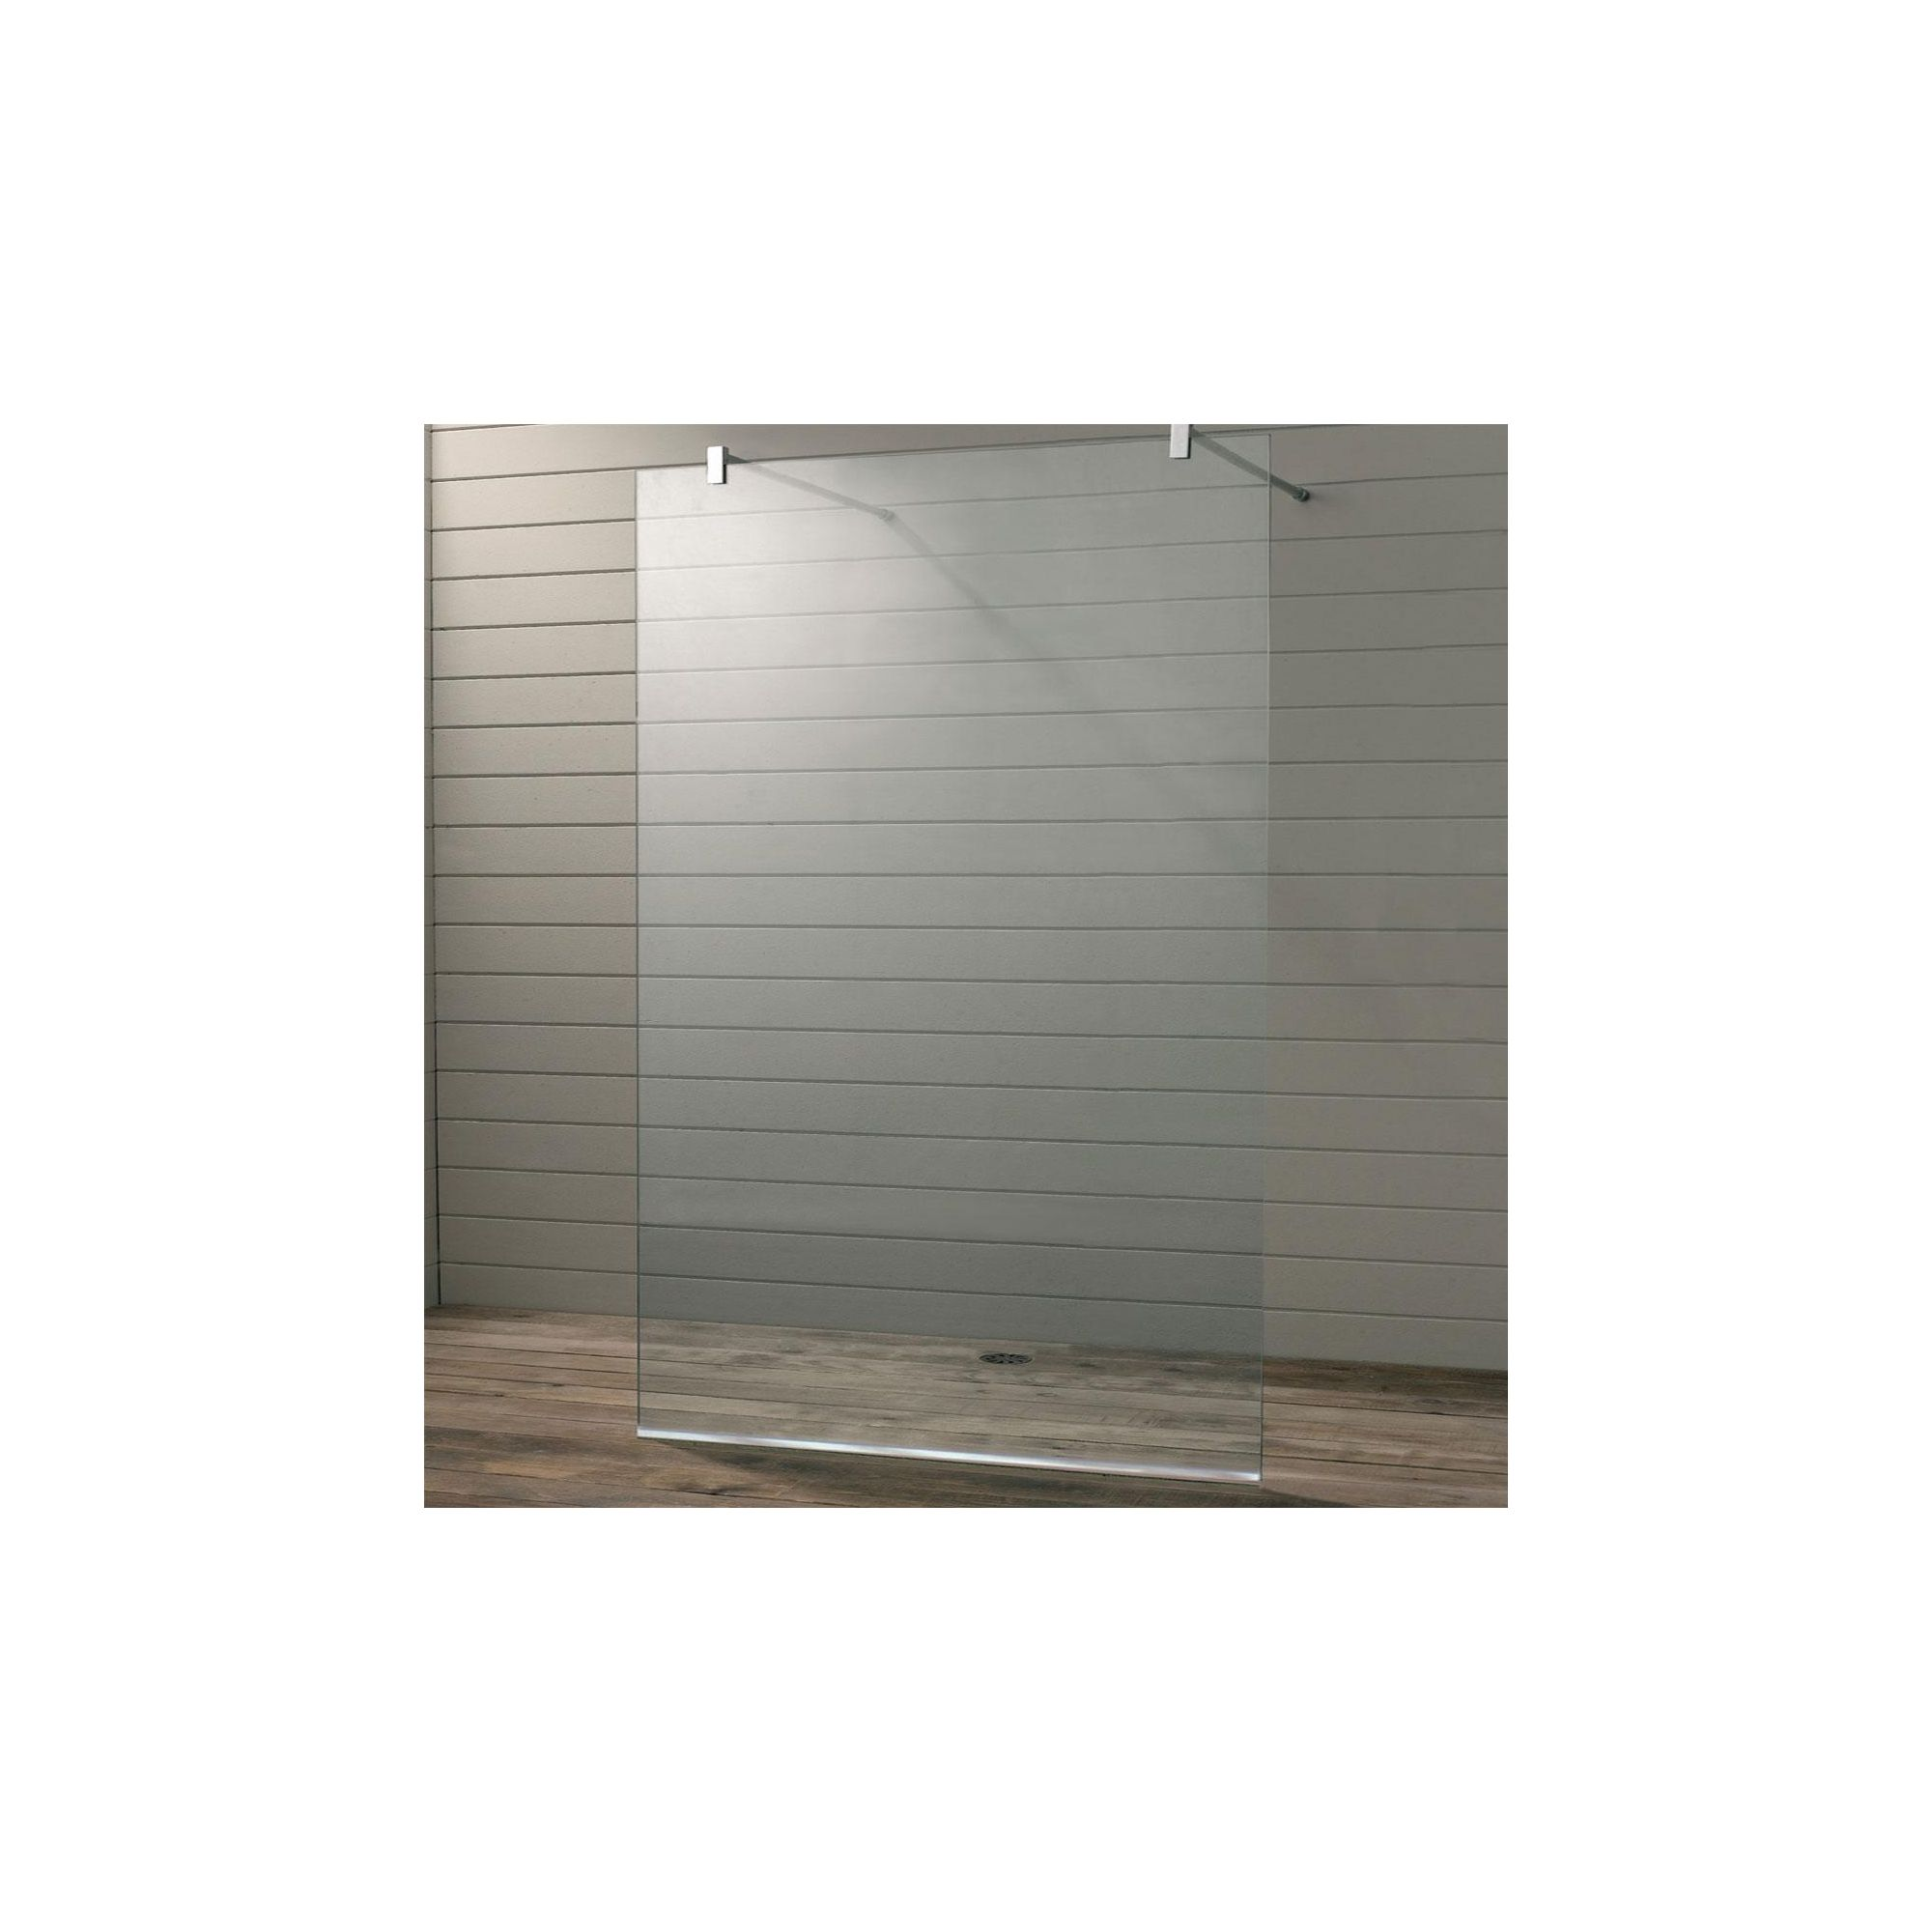 Duchy Premium Wet Room Glass Shower Panel, 1000mm x 800mm, 10mm Glass, Low Profile Tray at Tesco Direct